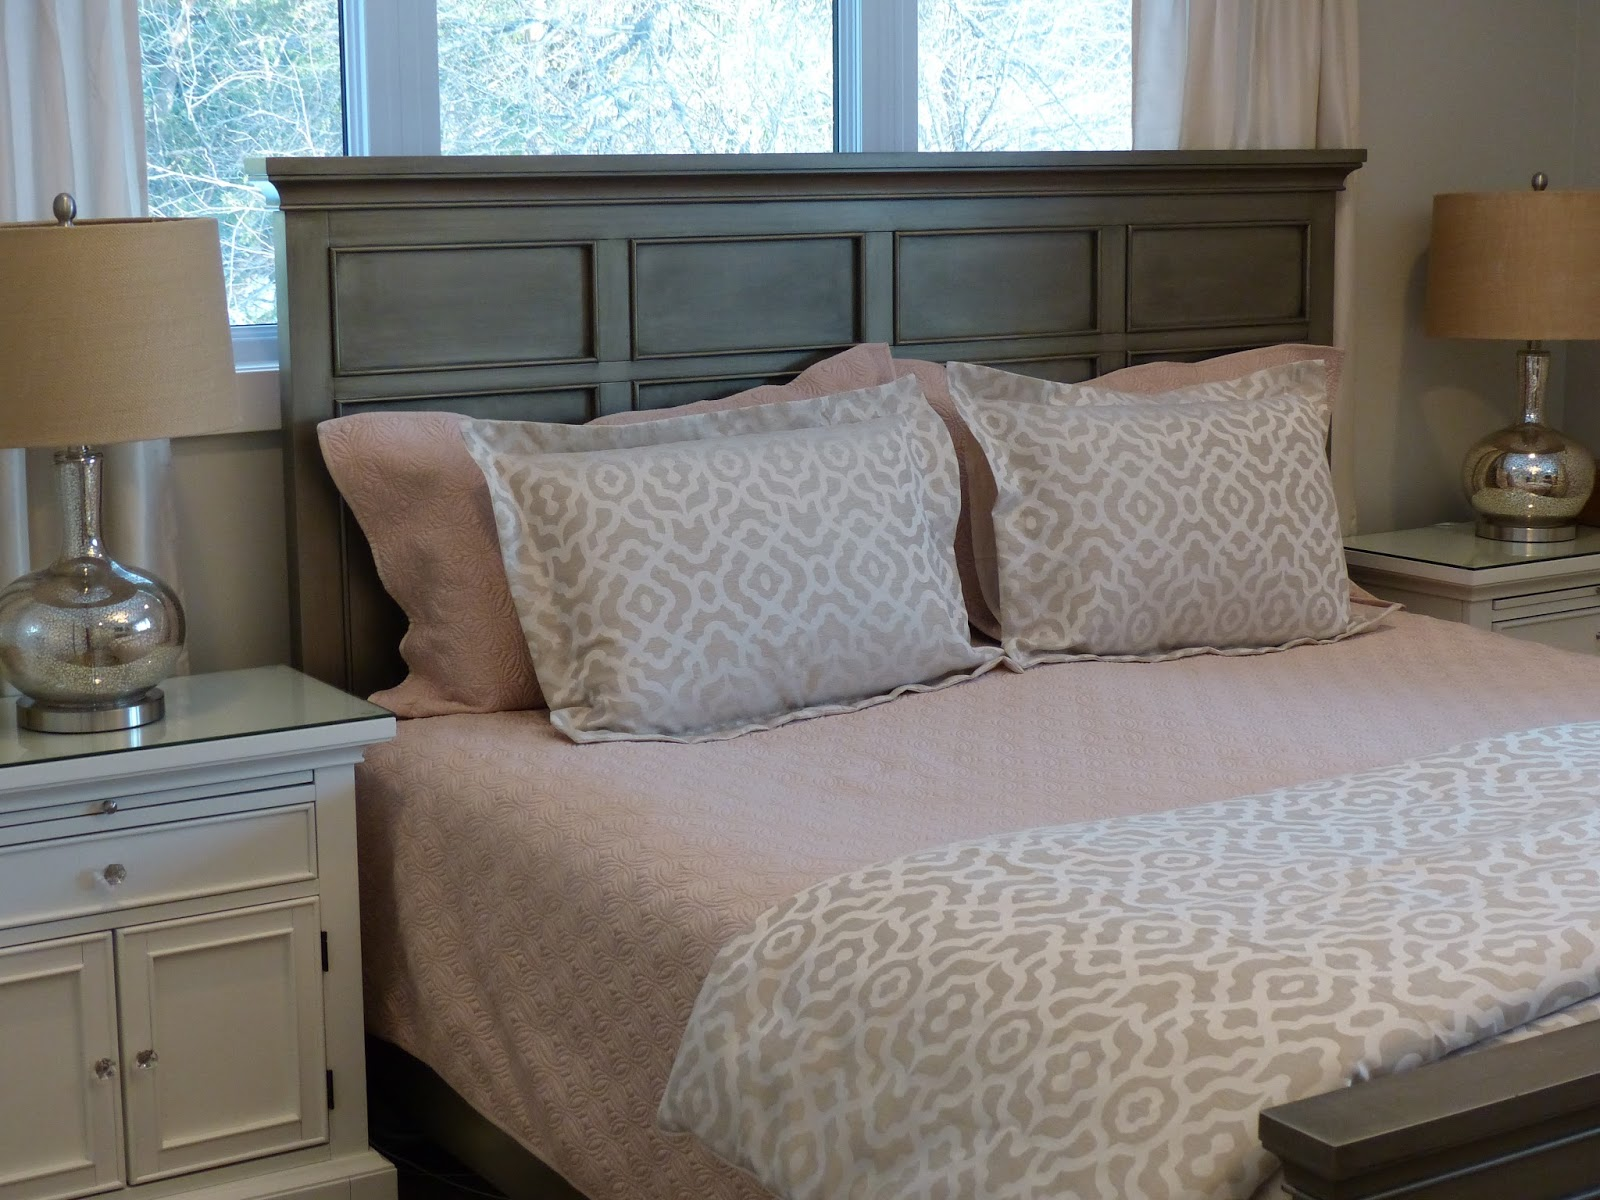 Julie peterson simple redesign help for the floppy for Redesign my bedroom